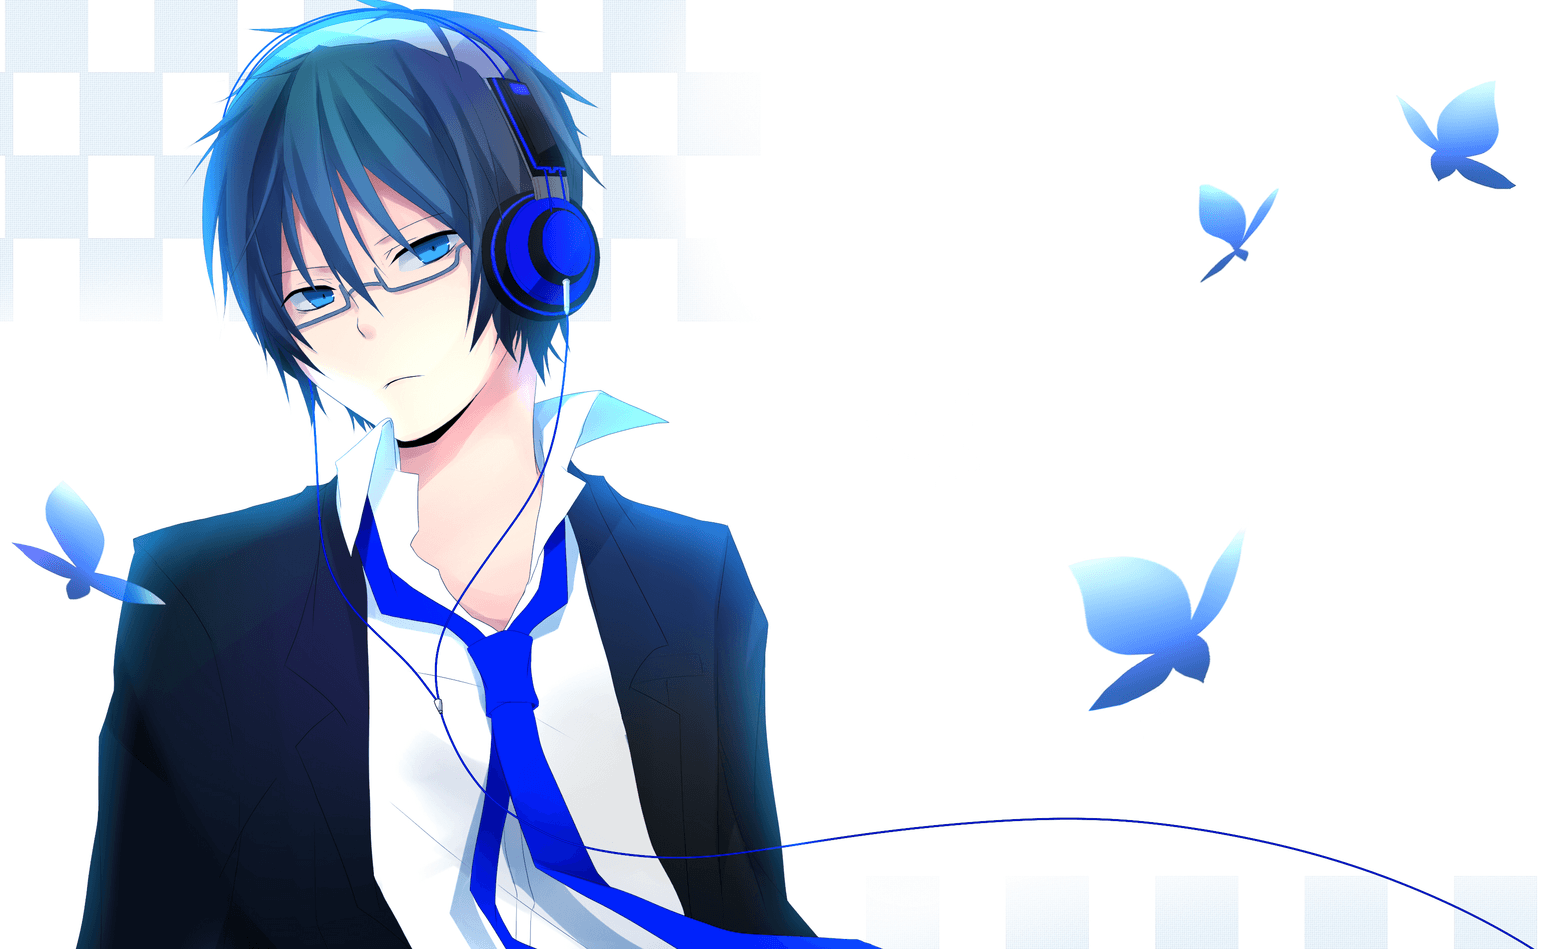 Anime boy new tab wallpapers & games, created for anime boy lovers. Cute Anime Boy Wallpapers - Wallpaper Cave